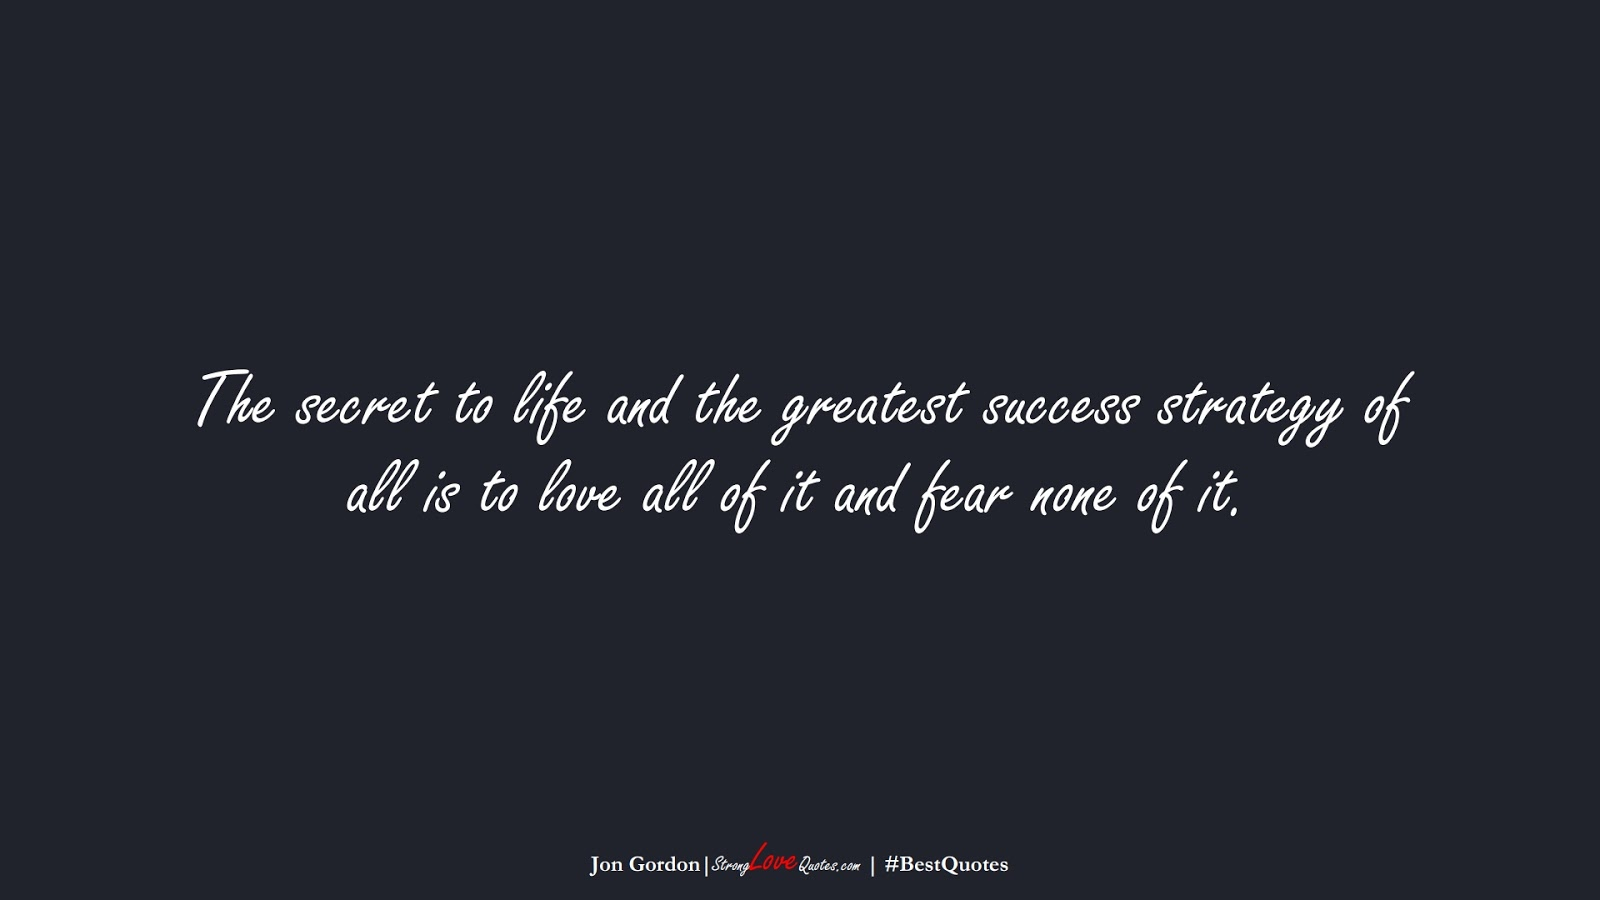 The secret to life and the greatest success strategy of all is to love all of it and fear none of it. (Jon Gordon);  #BestQuotes